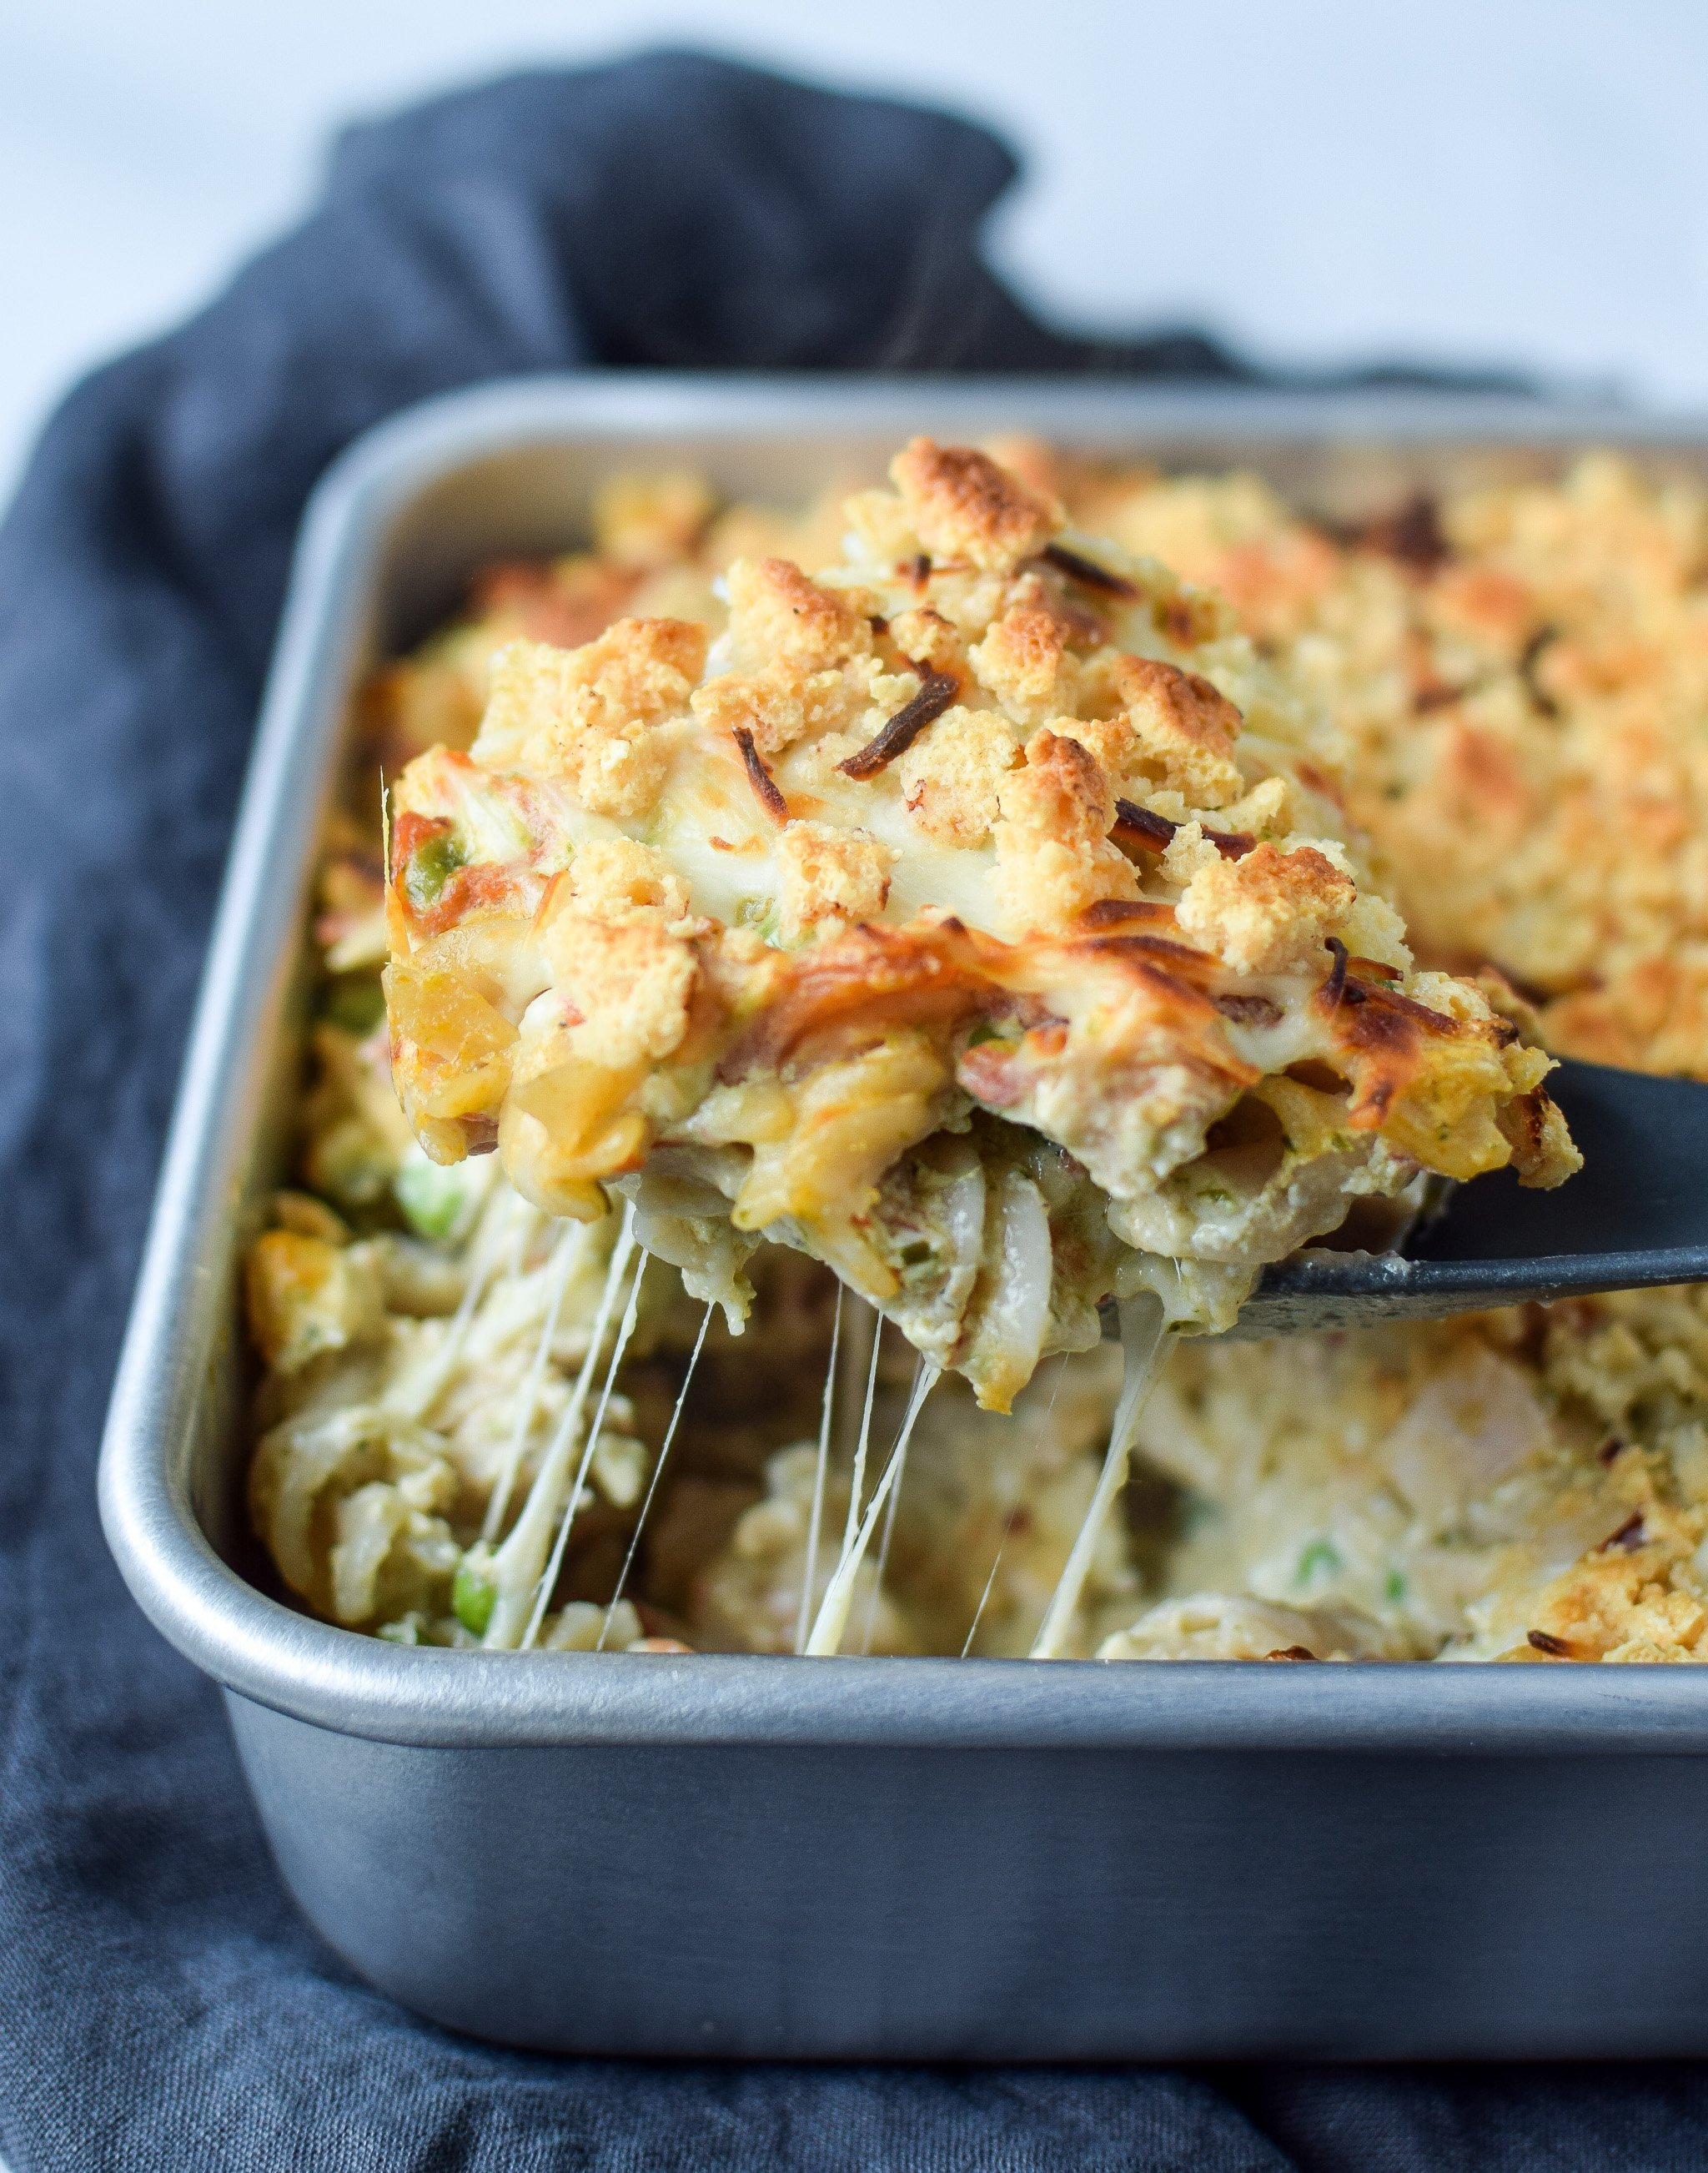 Creamy Pesto Pasta Chicken Bake With Peas Project Meal Plan